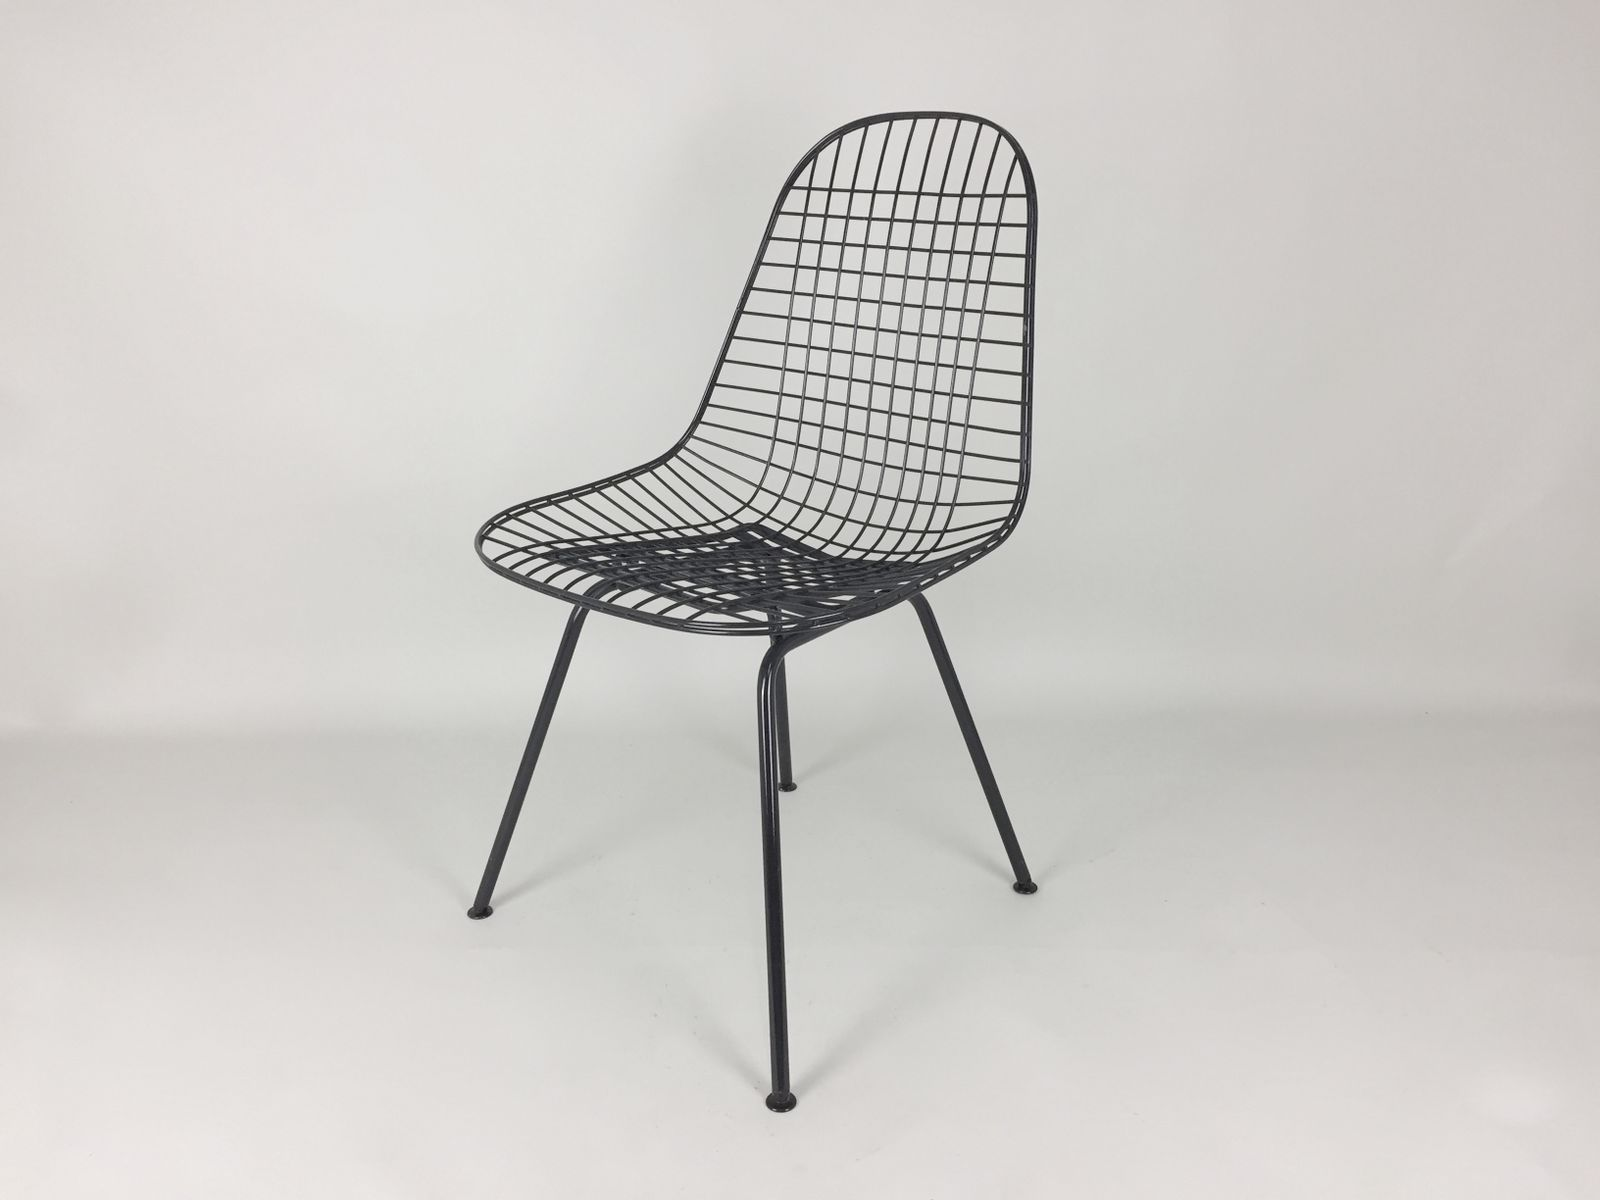 excellent free vintage dkx wire chair by charles u ray eames for vitra with vitra eames chair with vitra eames replica